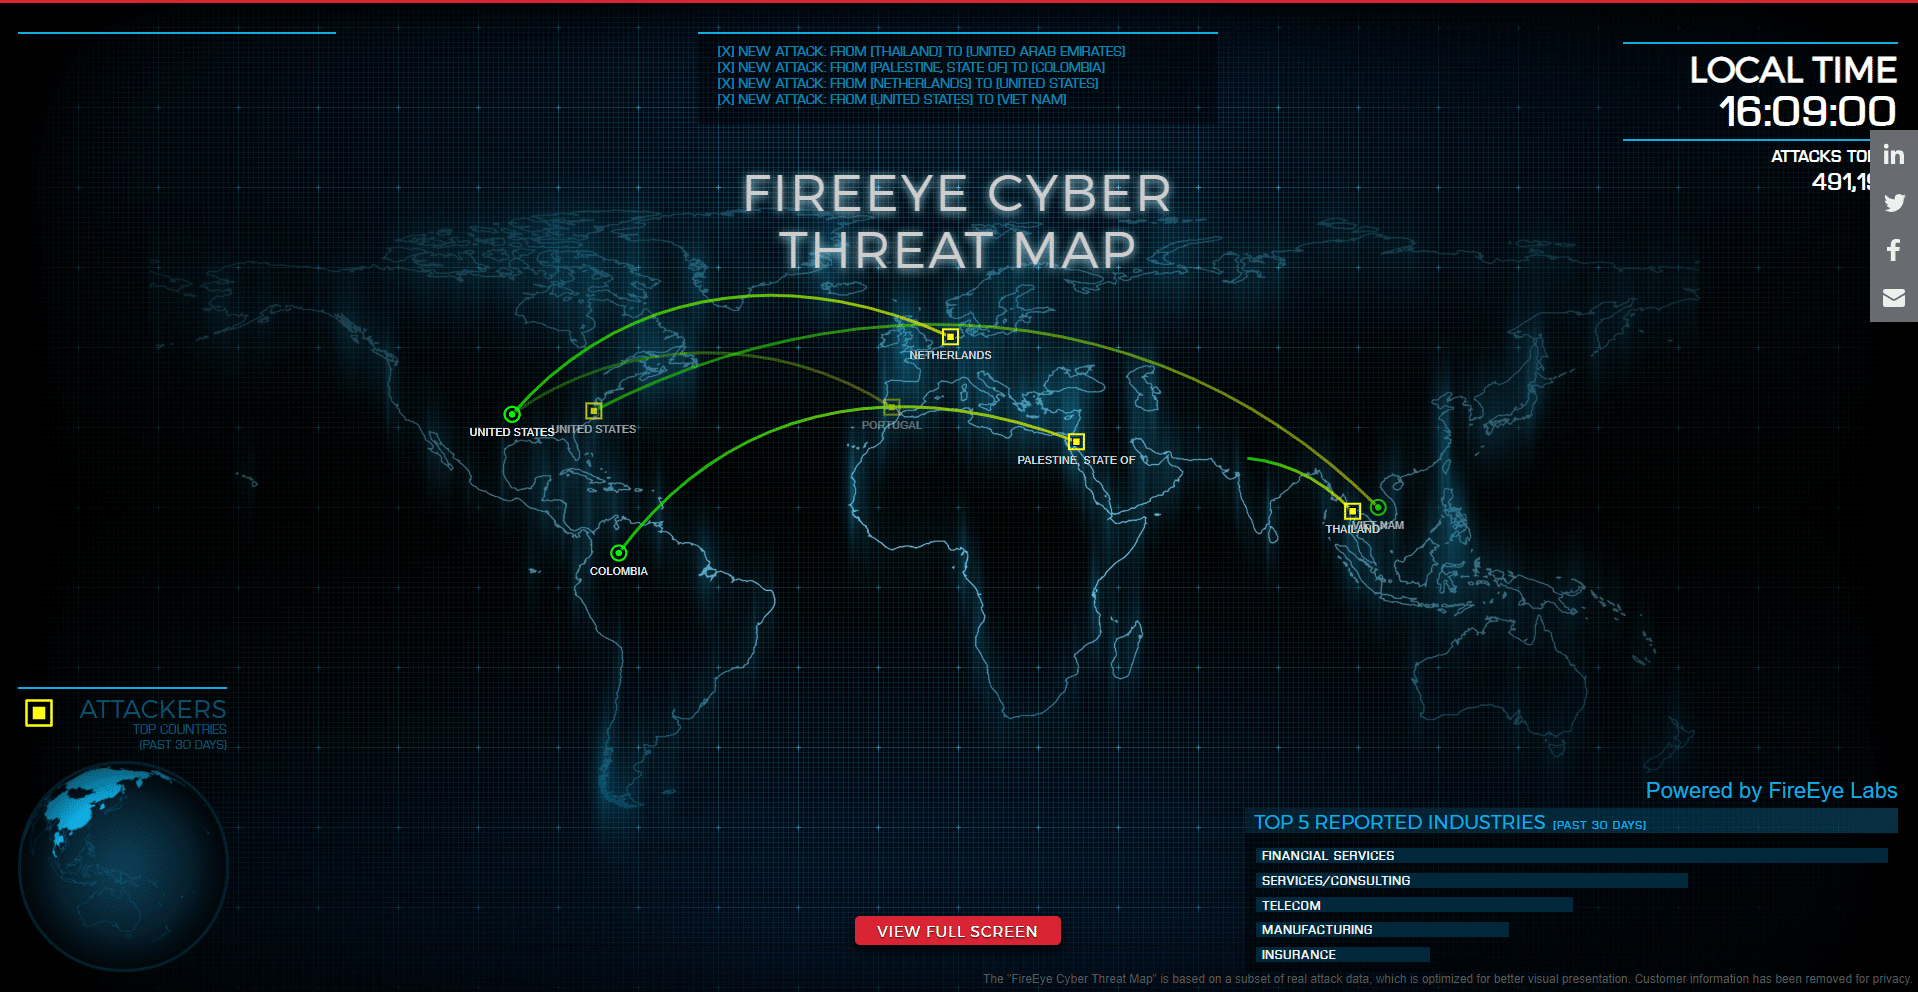 Cyber Attack Map by FireEye